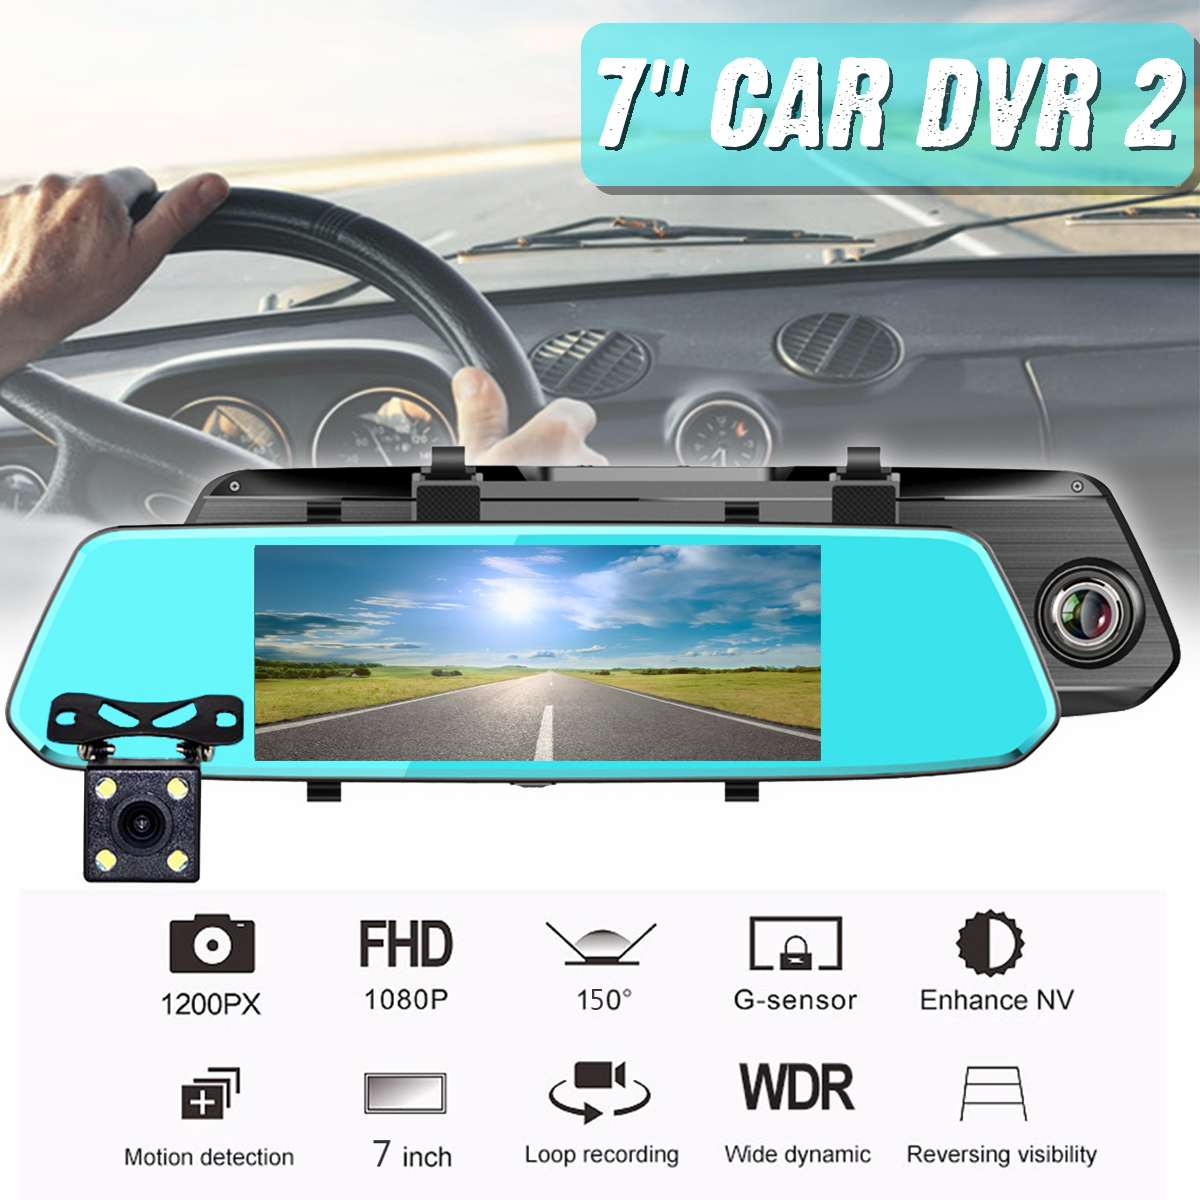 Dash Cam 7 inch USB <font><b>Car</b></font> Rearview <font><b>Mirror</b></font> <font><b>Car</b></font> <font><b>DVR</b></font> <font><b>Mirror</b></font> Android FHD Auto Recorder GPS Navigation Dash Camera Rear View <font><b>Mirror</b></font> image